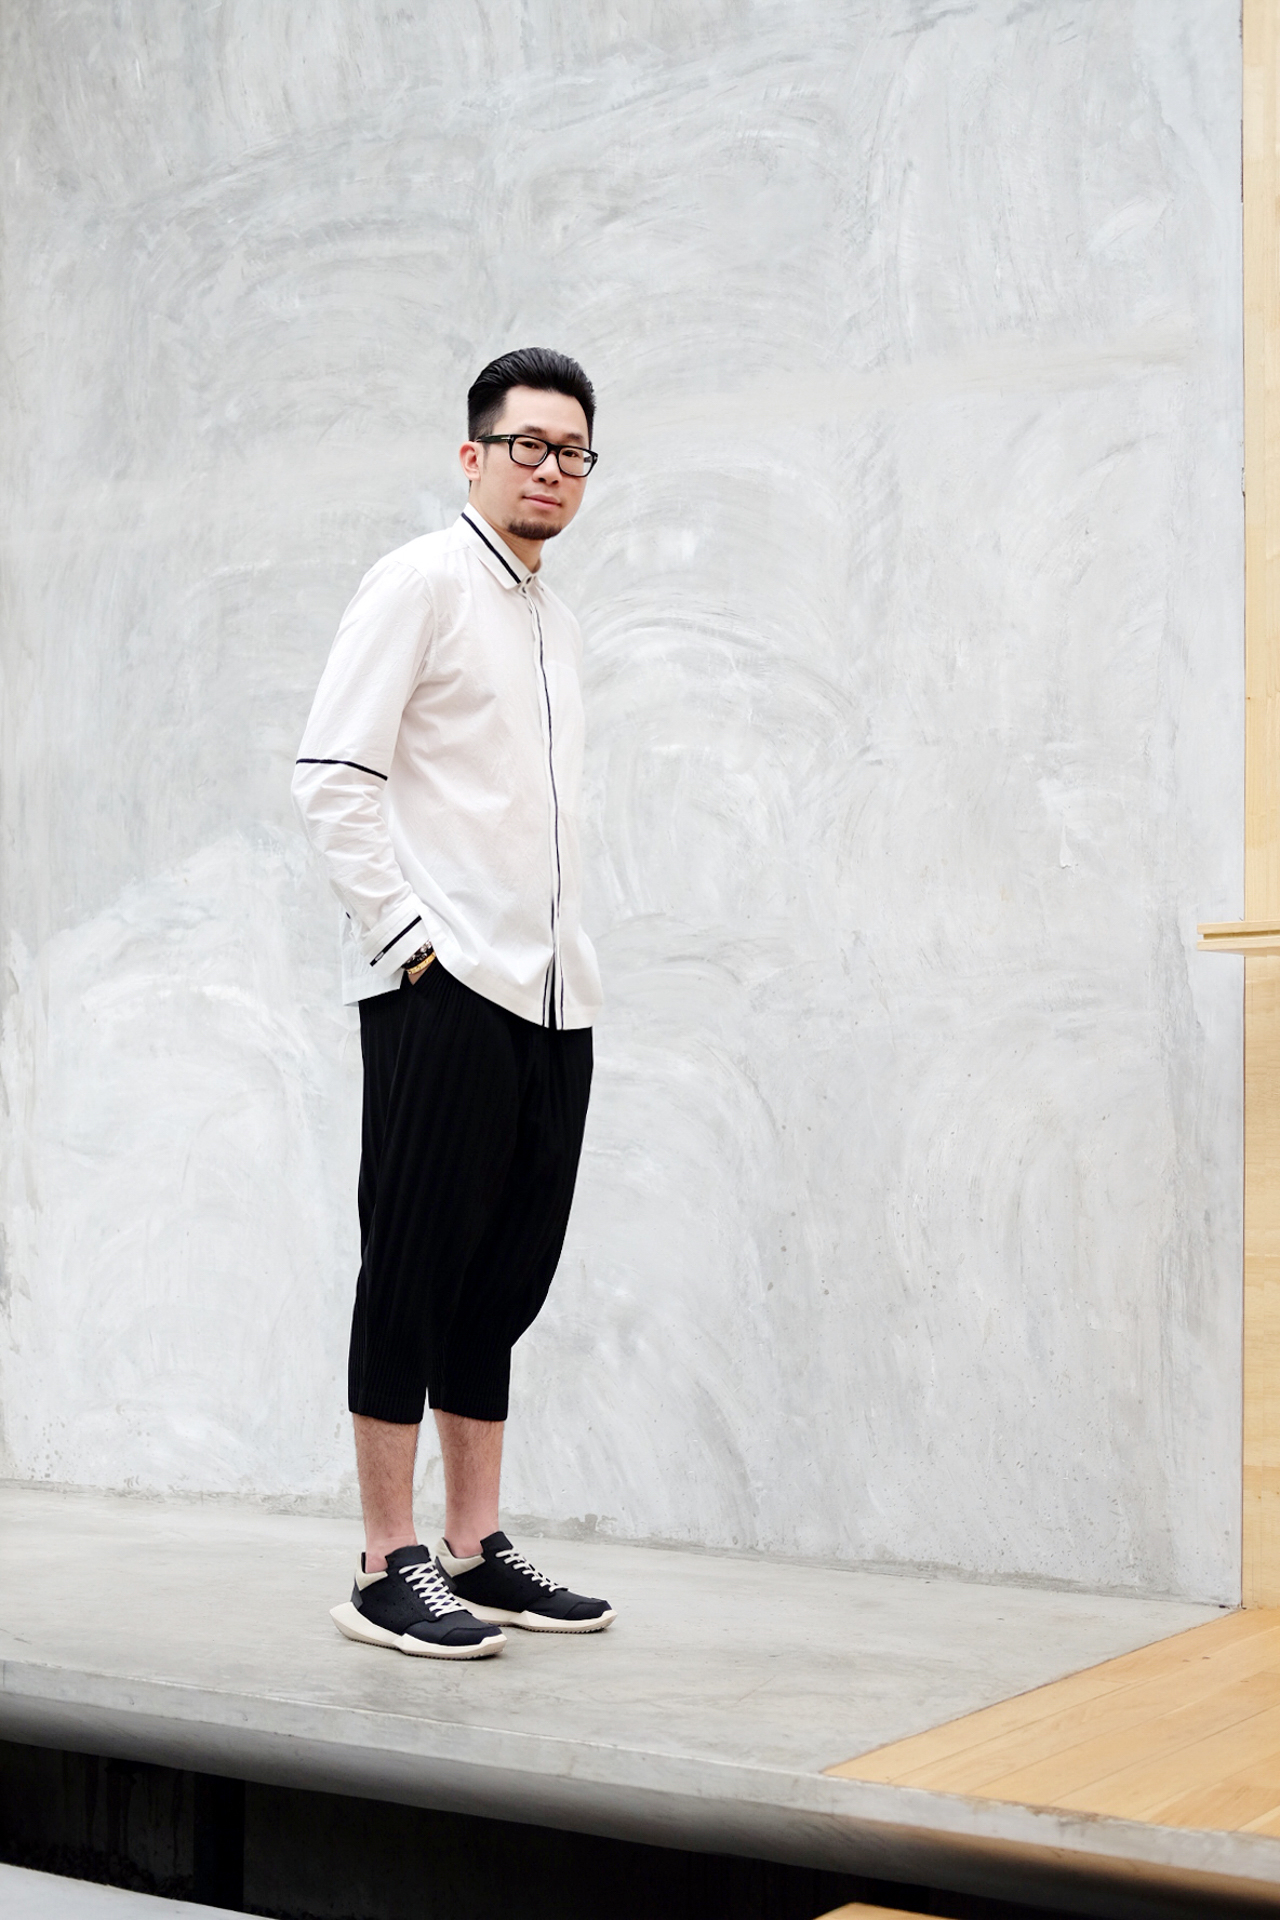 Issey Miyake Men White Contrast Stripe Shirt and Homme Plisse Pleated Shorts and Rick Owens Adidas Tech Runner Sneakers